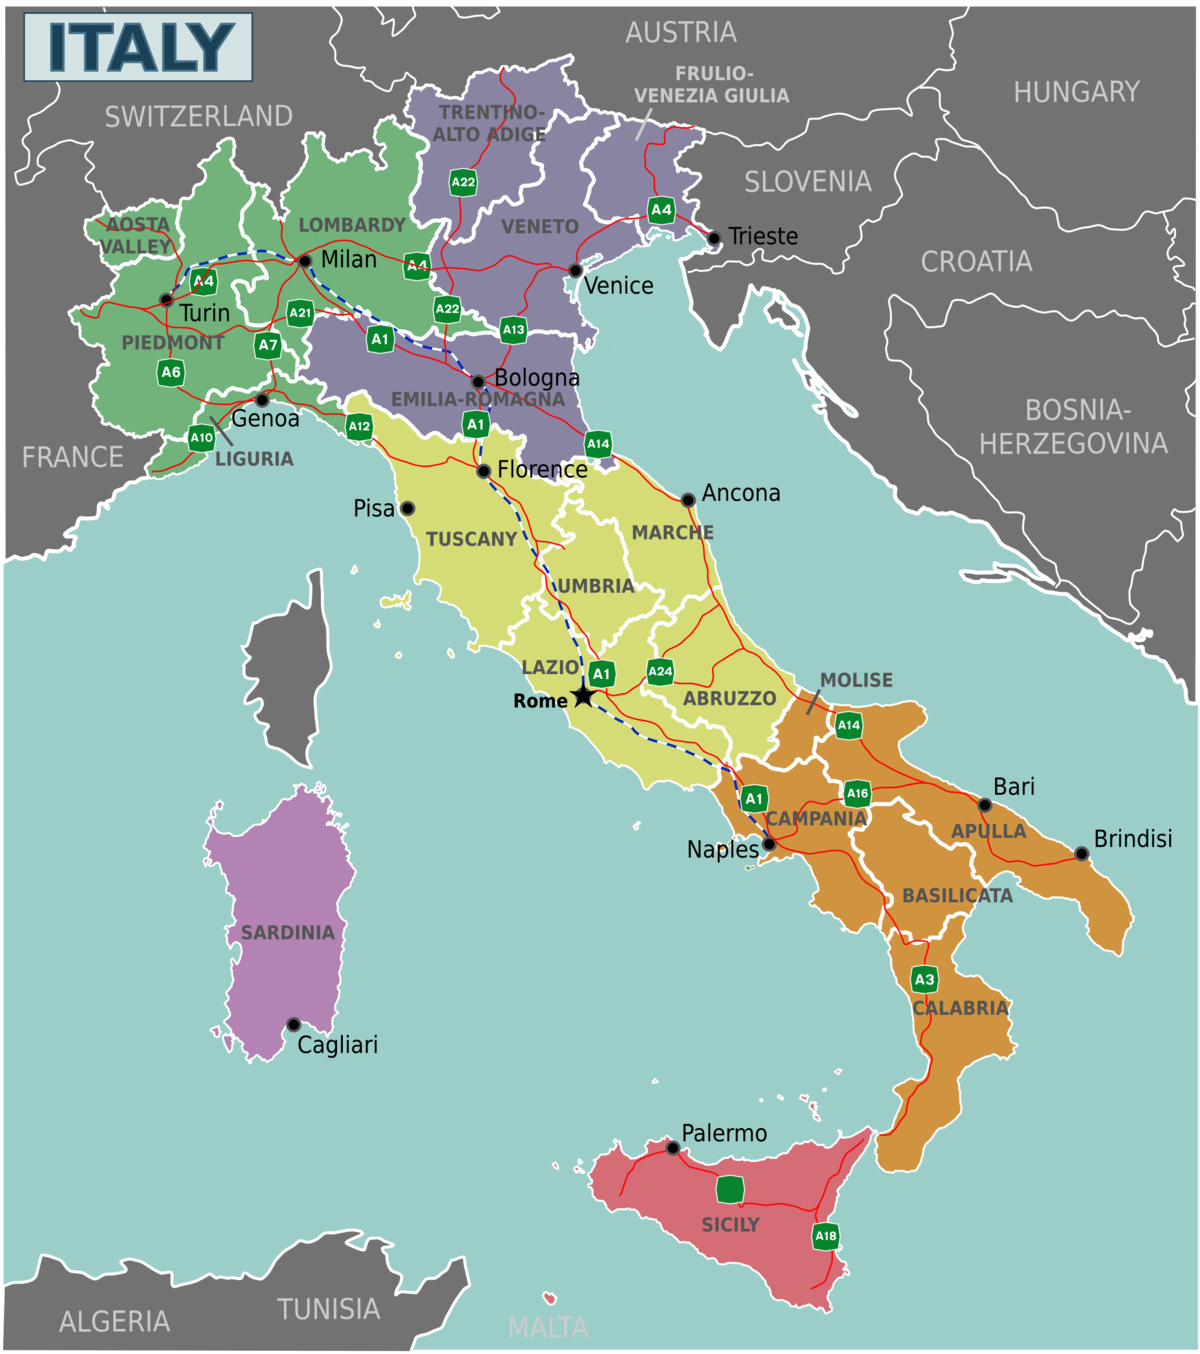 Italy - Travel guide at Wikivoyage